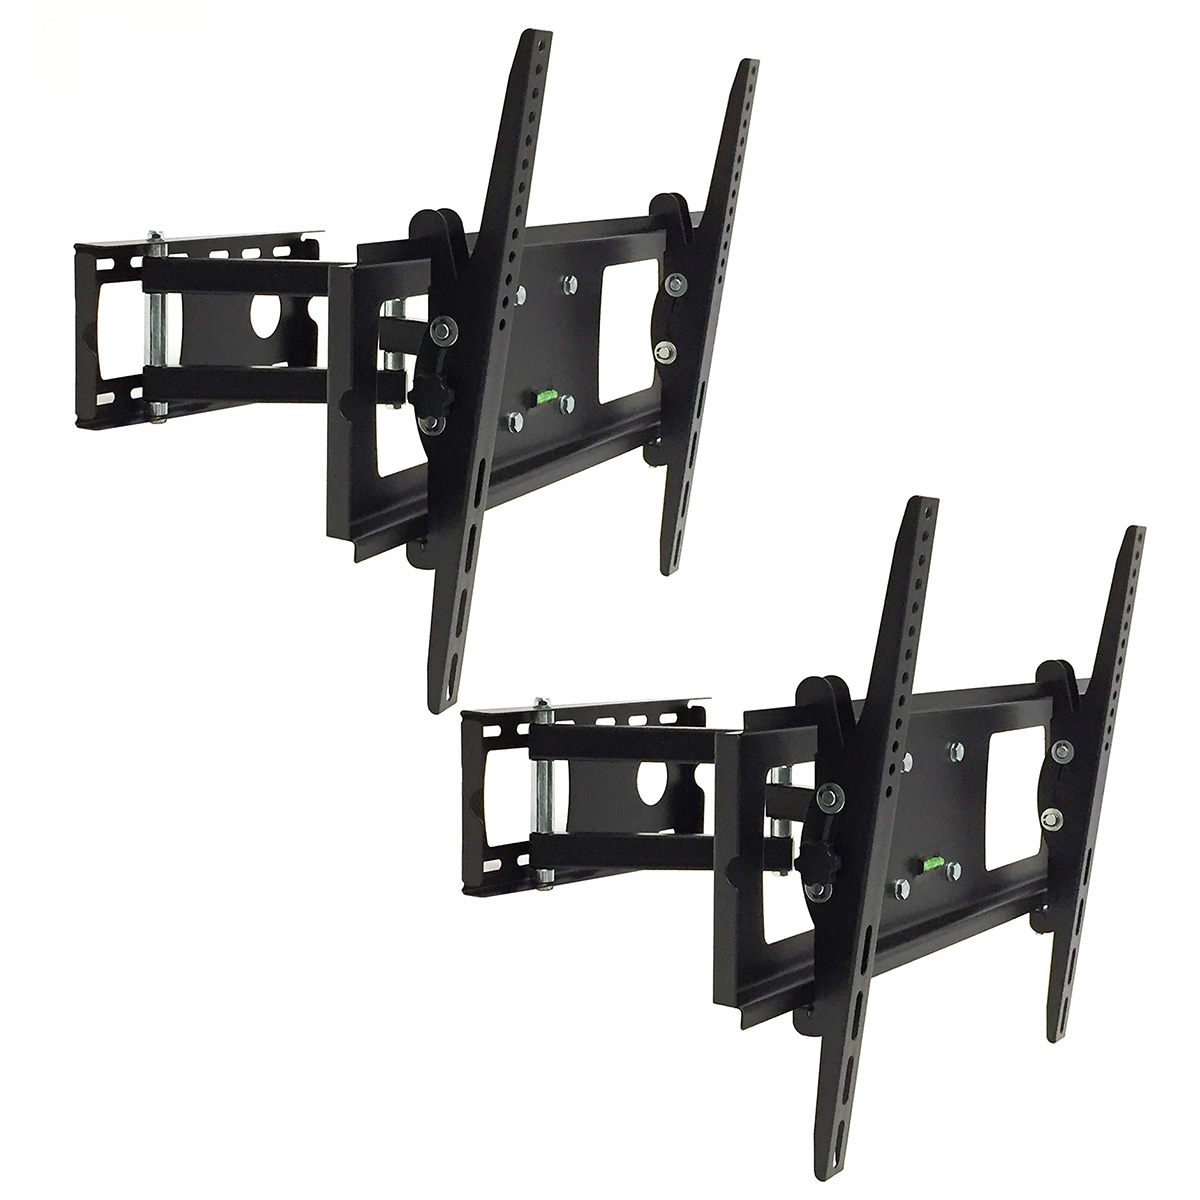 2 Vizio Lcd Led Tv Swivel Wall Mount Bracket Fit 30 37 40